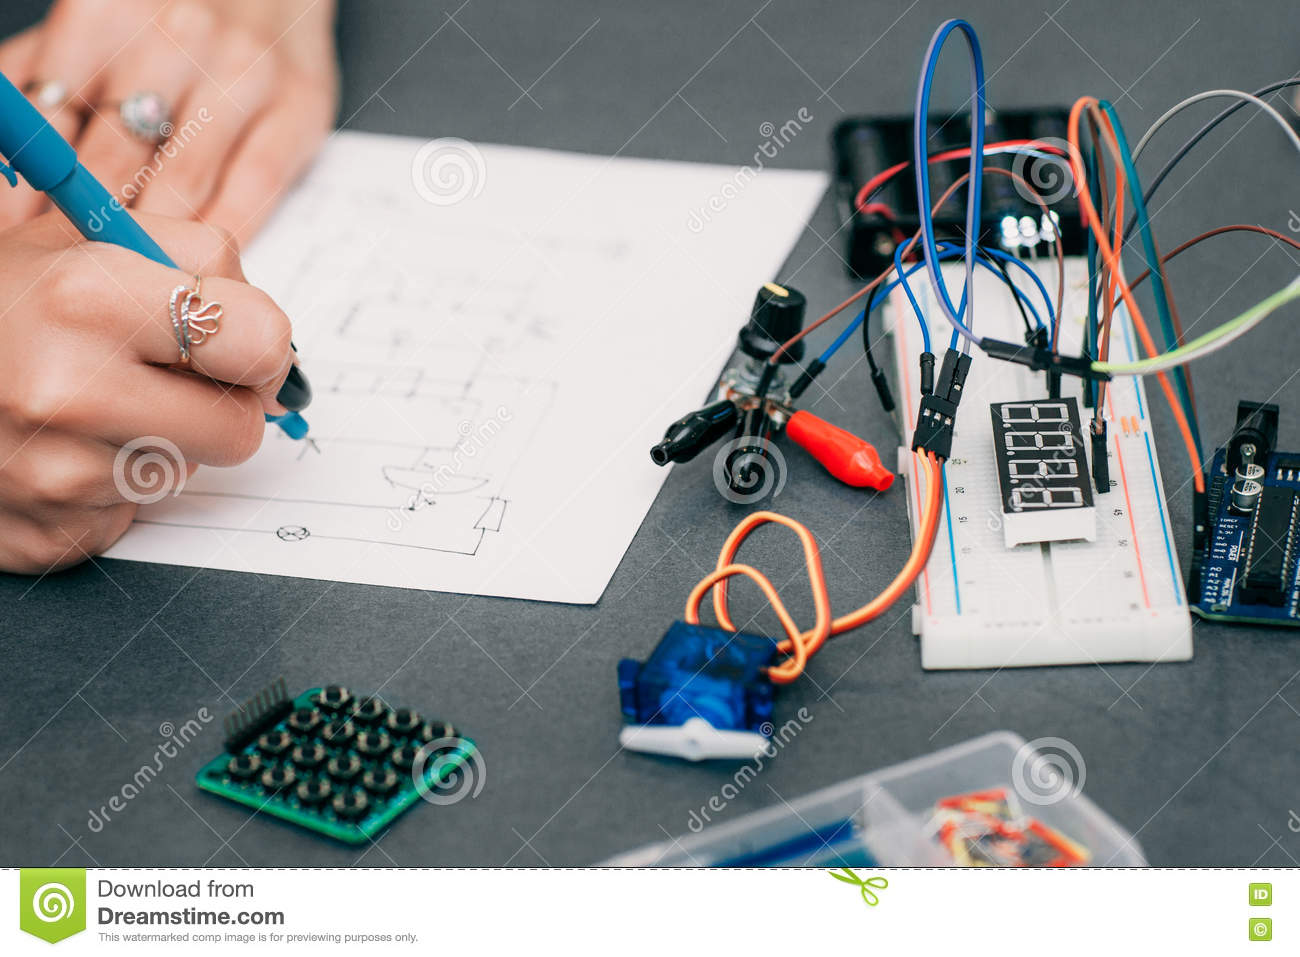 hight resolution of wiring diagram drawing with breadboard electronic construction developing female engineer in laboratory smart woman hobby and electronics concept